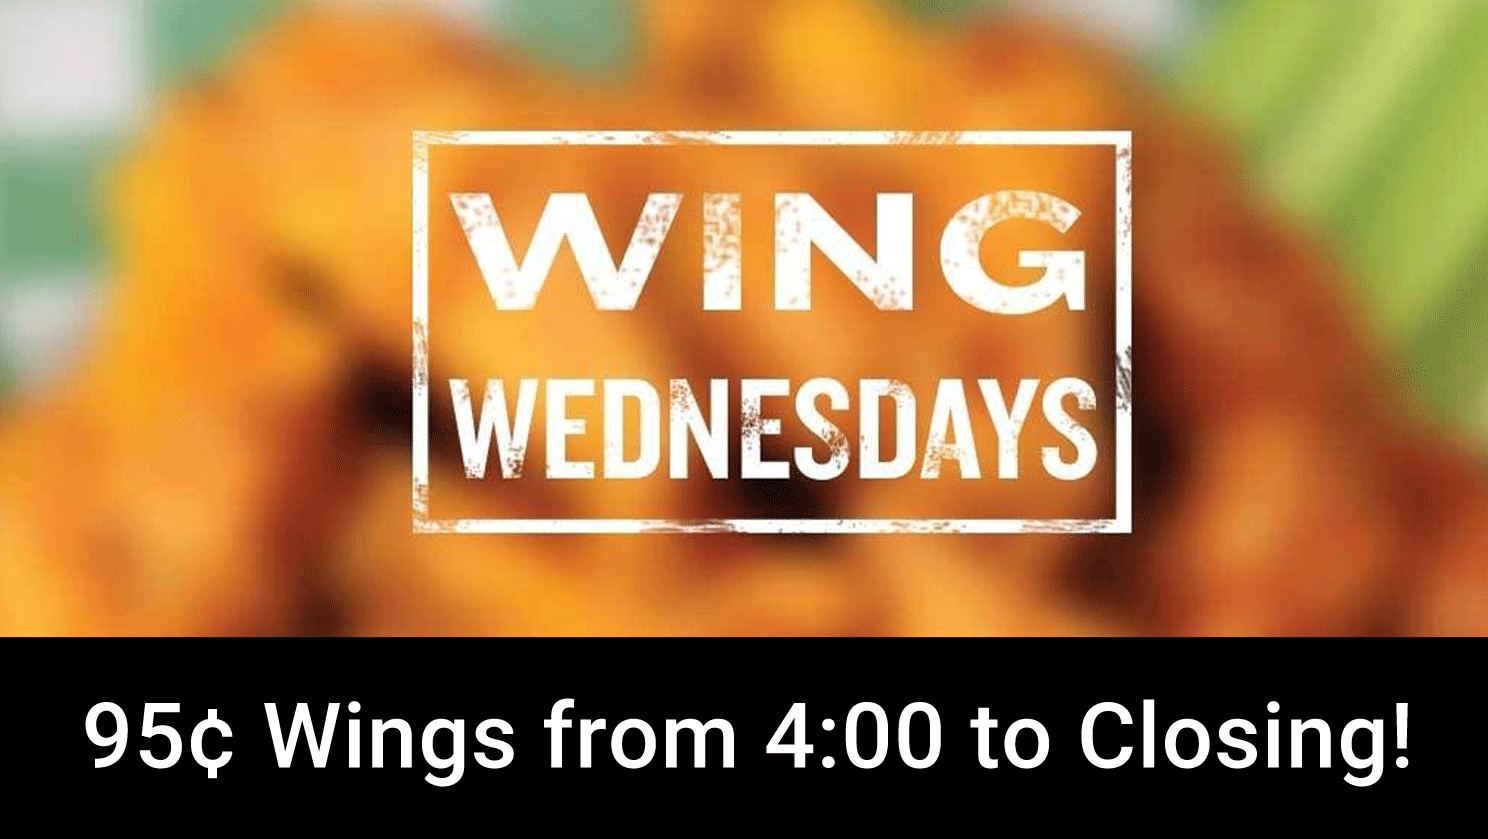 Wing Wednesdays from 4:00 to Closing